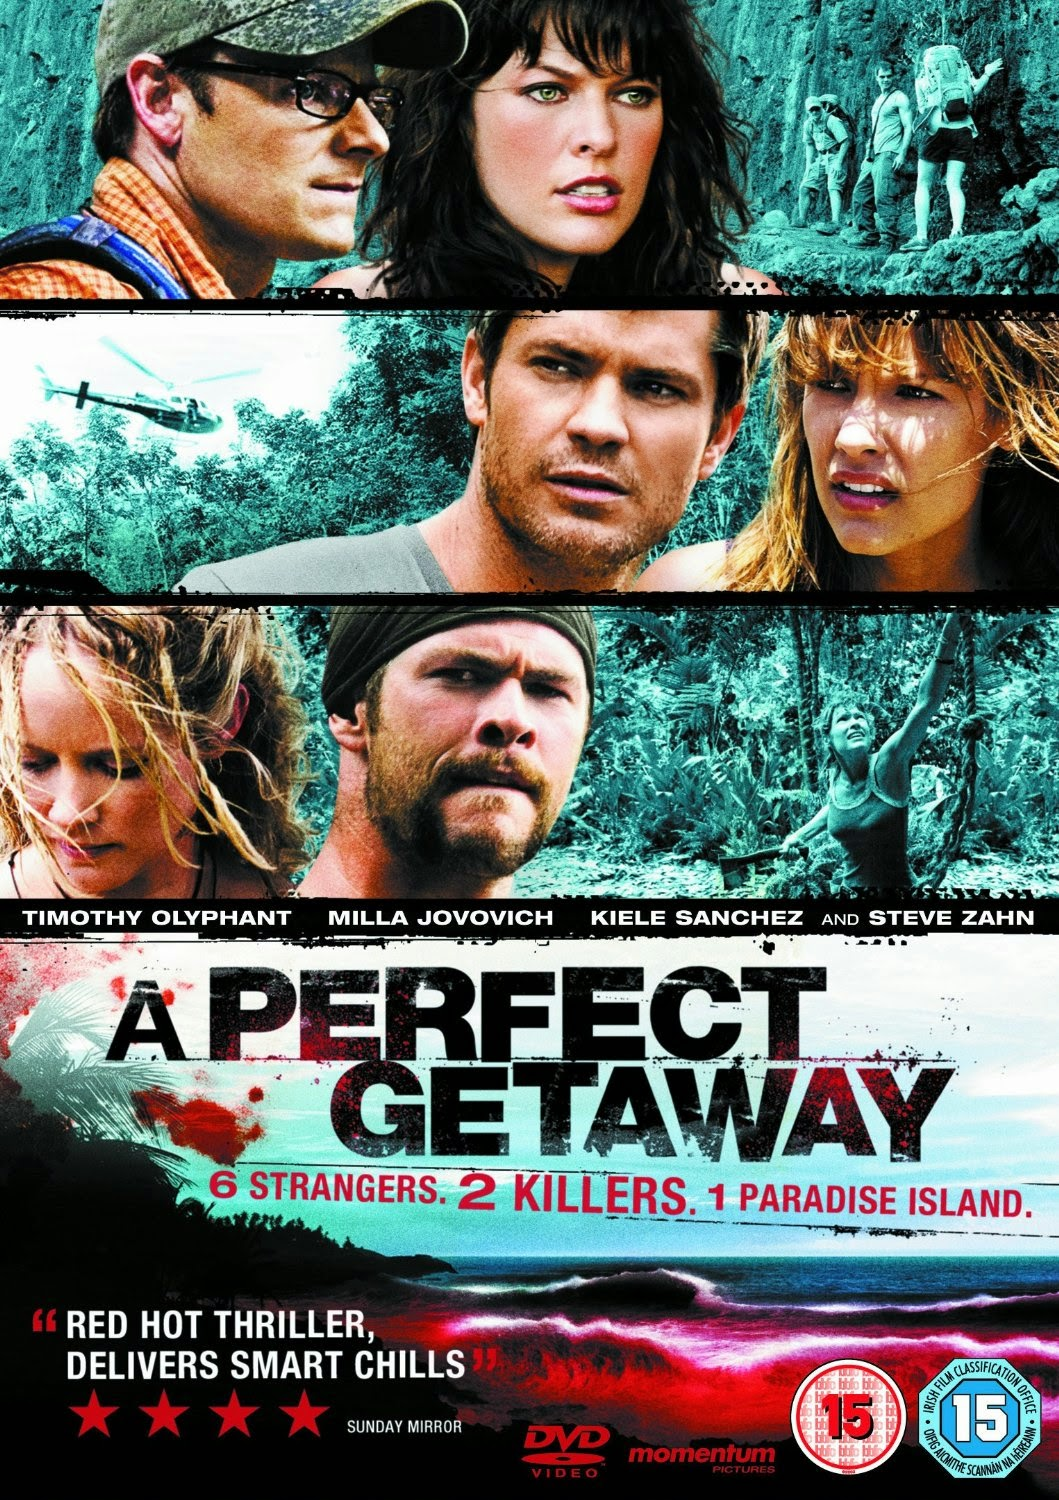 deserted island horror movies 113 min | adult, horror a group of castaways wash ashore on a deserted island in this italian sex/gore movie they are unaware that a sex-crazed radioactive monster is also on the island.